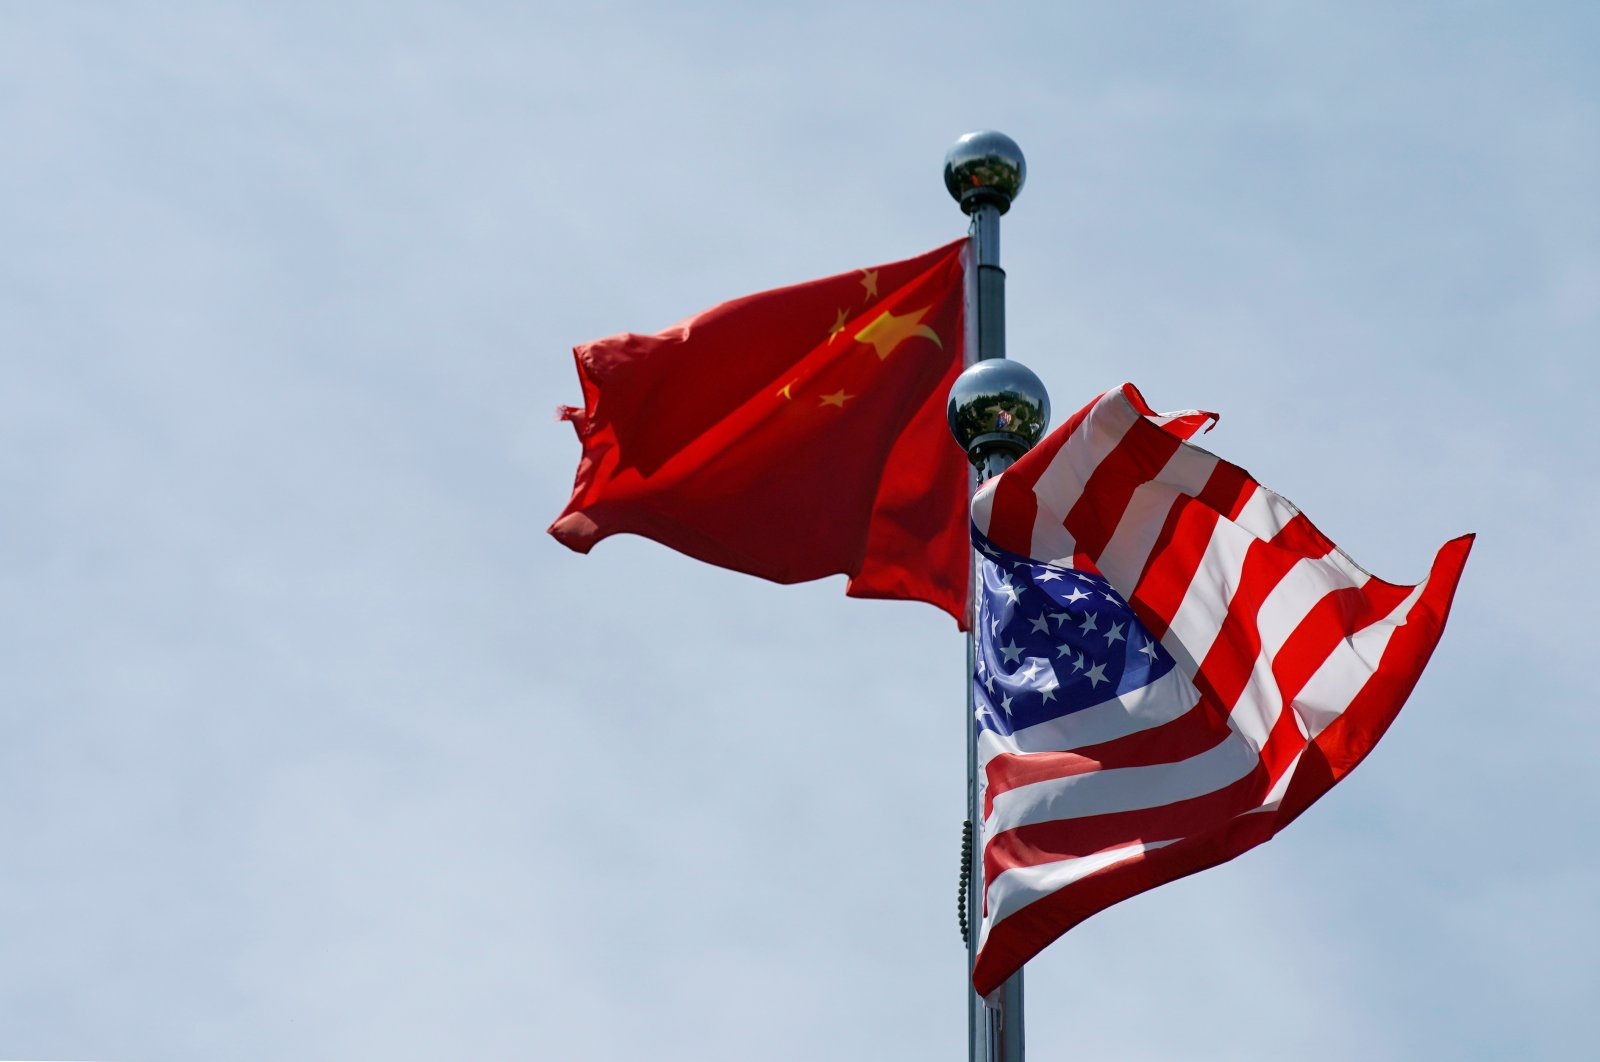 The Chinese and U.S. flags flutter near the Bund waterfront area in Shanghai, China, July 30, 2019. (Reuters Photo)